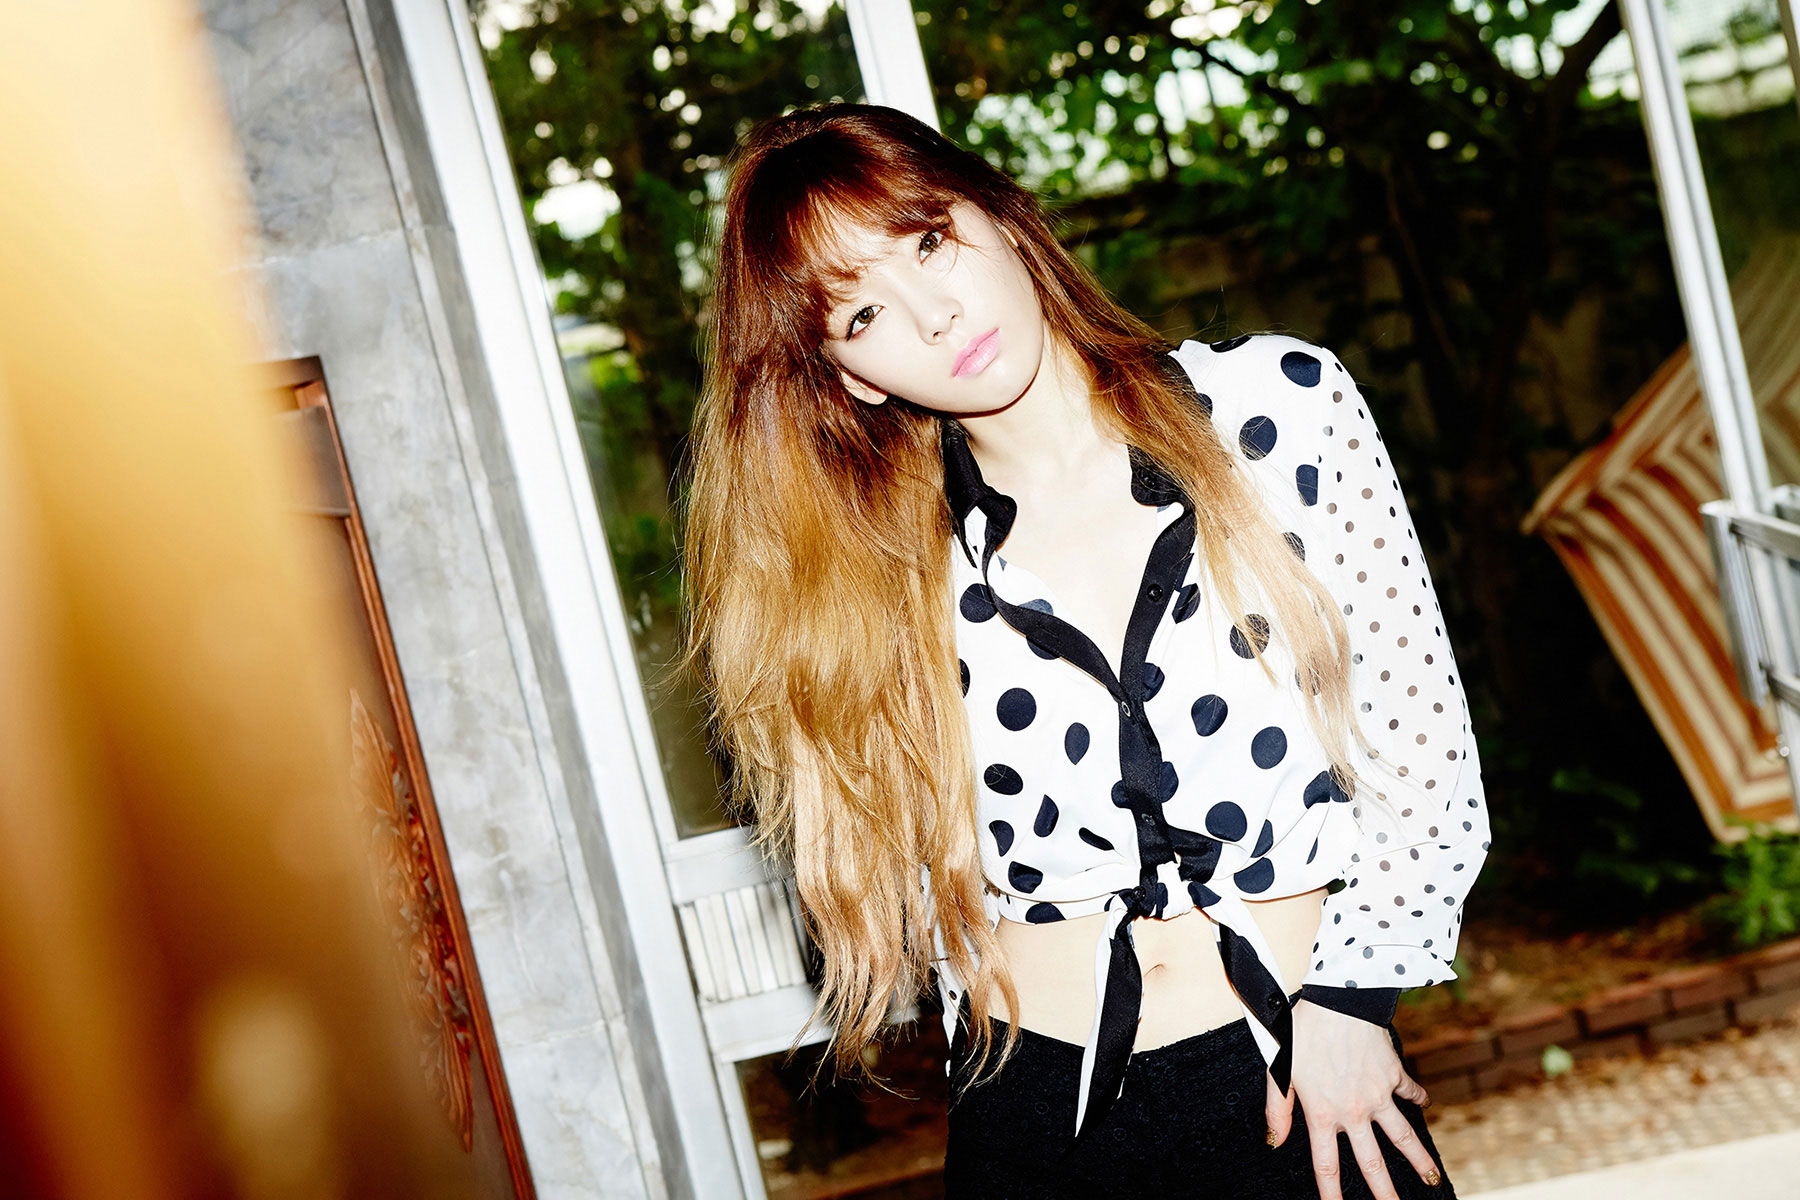 SNSD Taeyeon Holler concept photos